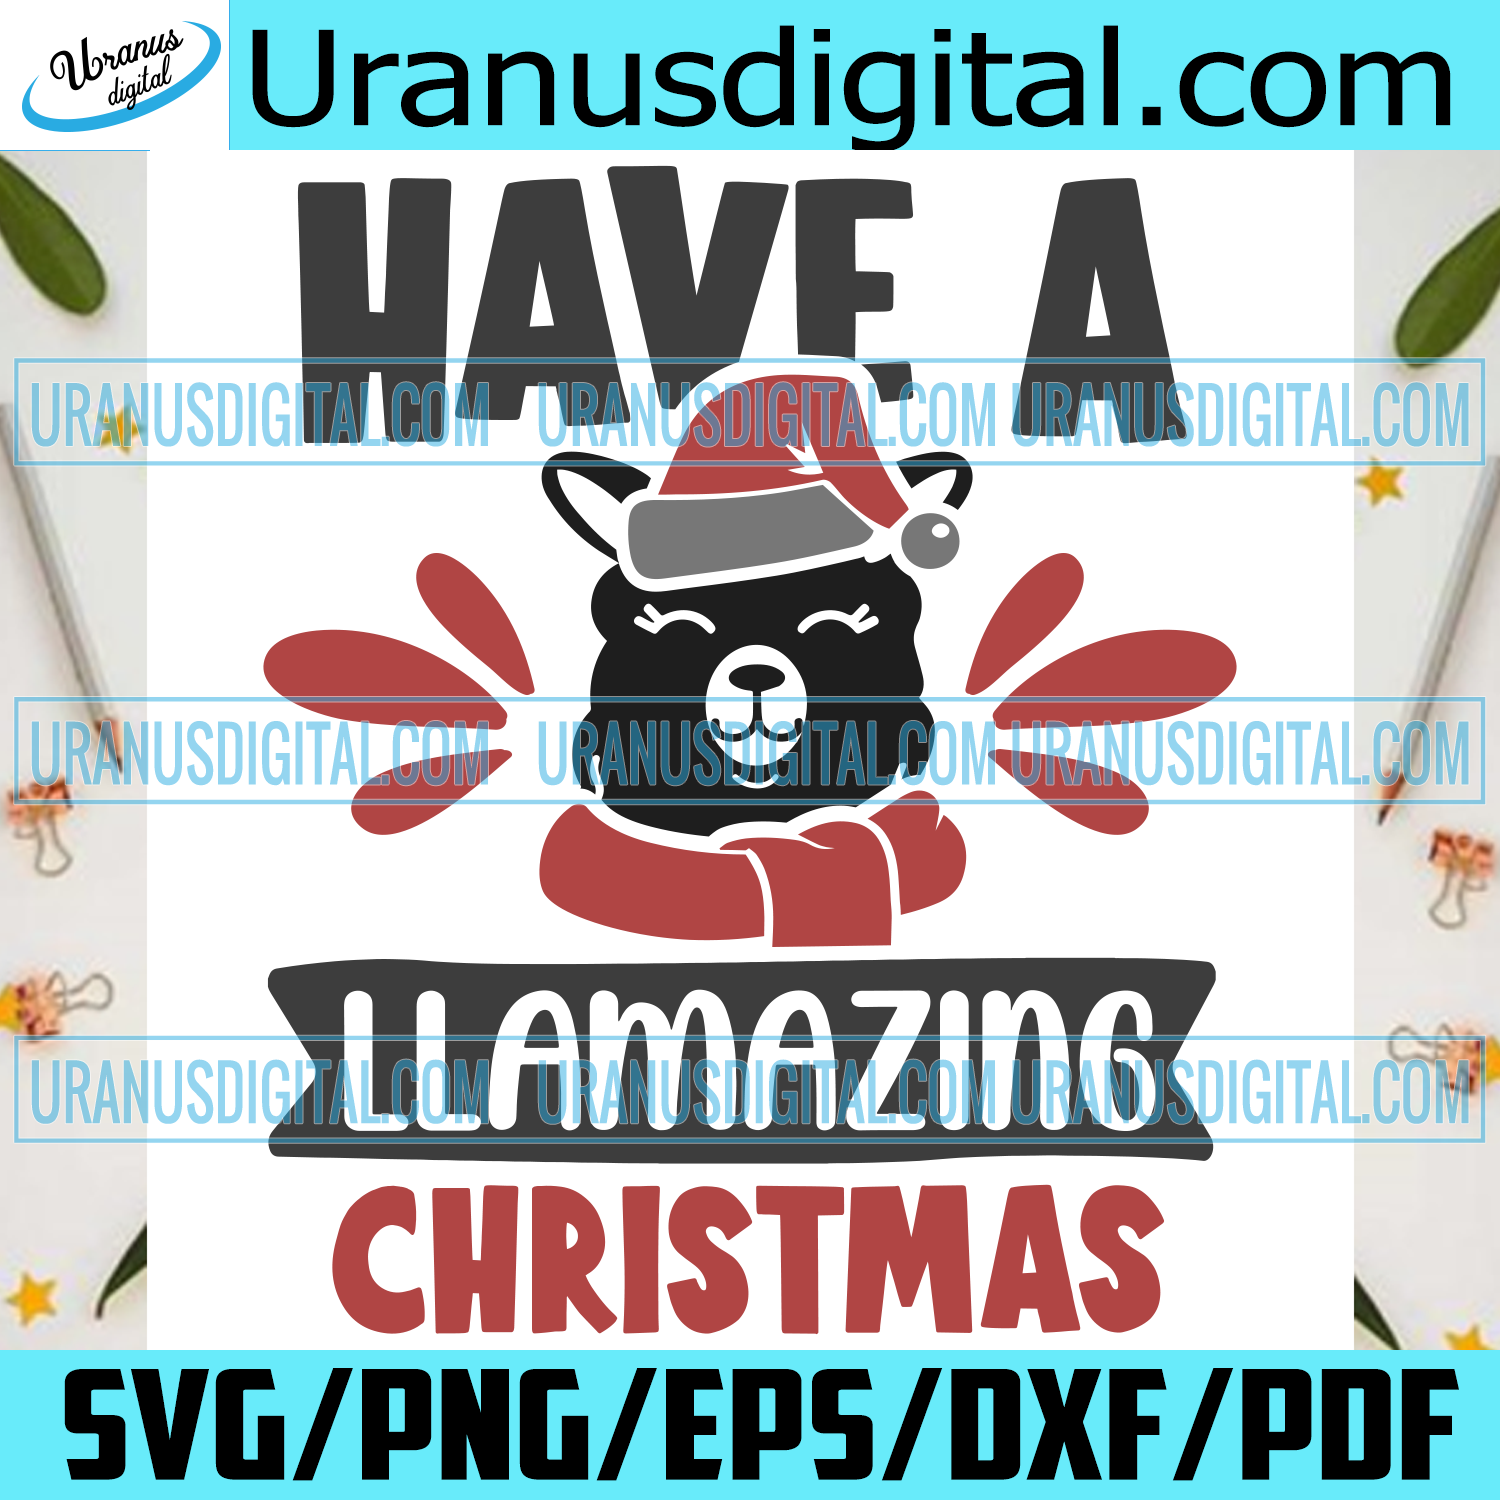 Have A Llamazing Christmas , Christmas Svg, Christmas day, Merry Christmas svg, llama, Xmas, Christmas lights, Christmas decorations, Christmas gift, Santa Claus svg, Santa Claus, Christmas decor, Snow, Christmas Time